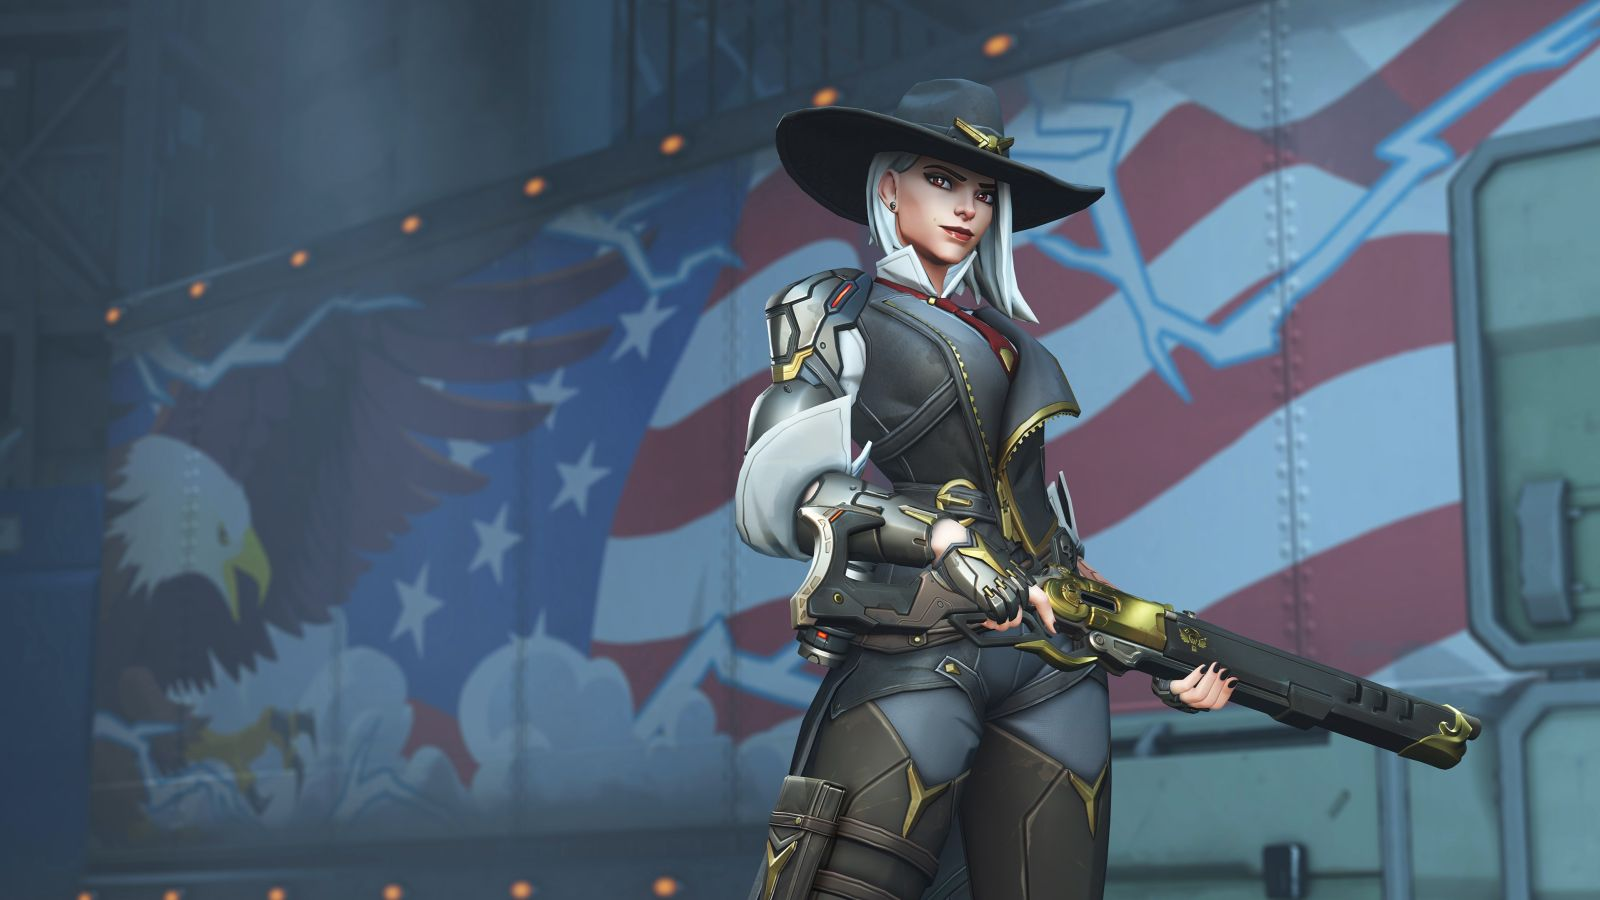 Ashe sprays in Overwatch Game Archives - VoStory